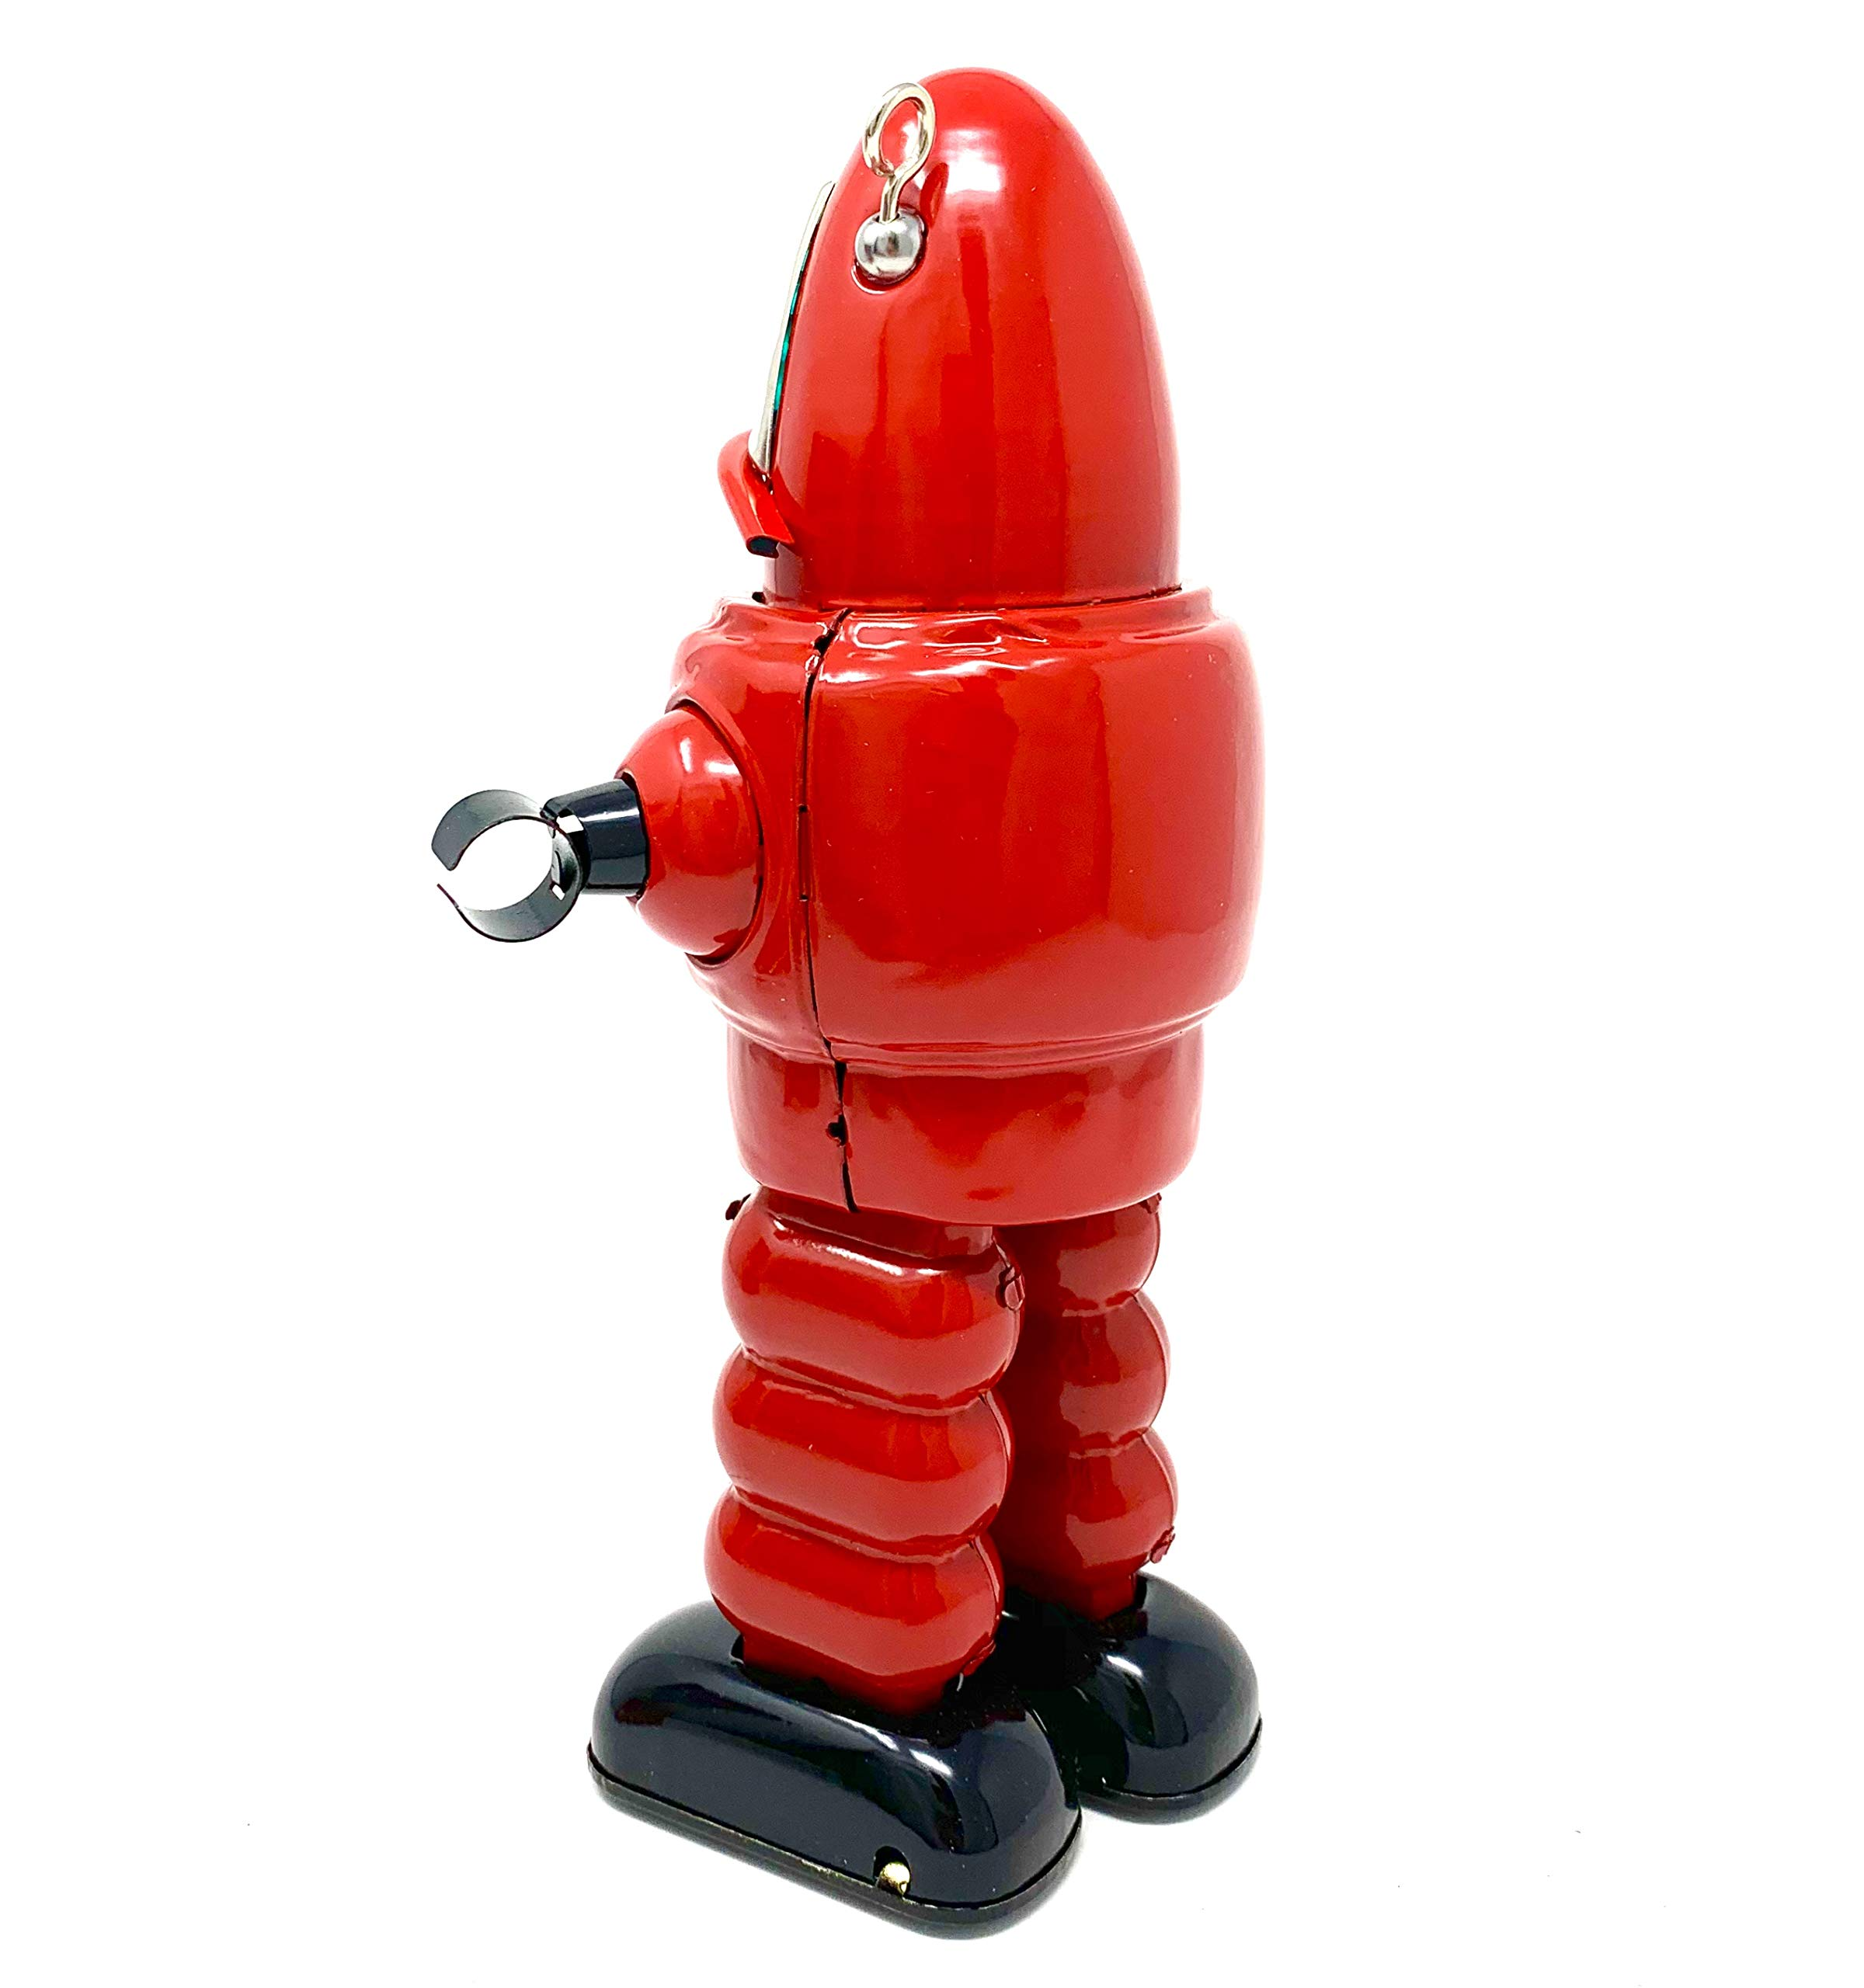 Off the Wall Toys Vintage Style Collectible Wind Up Red Planet Robot Wind Up 8.5'' MS430 by Off the Wall Toys (Image #5)